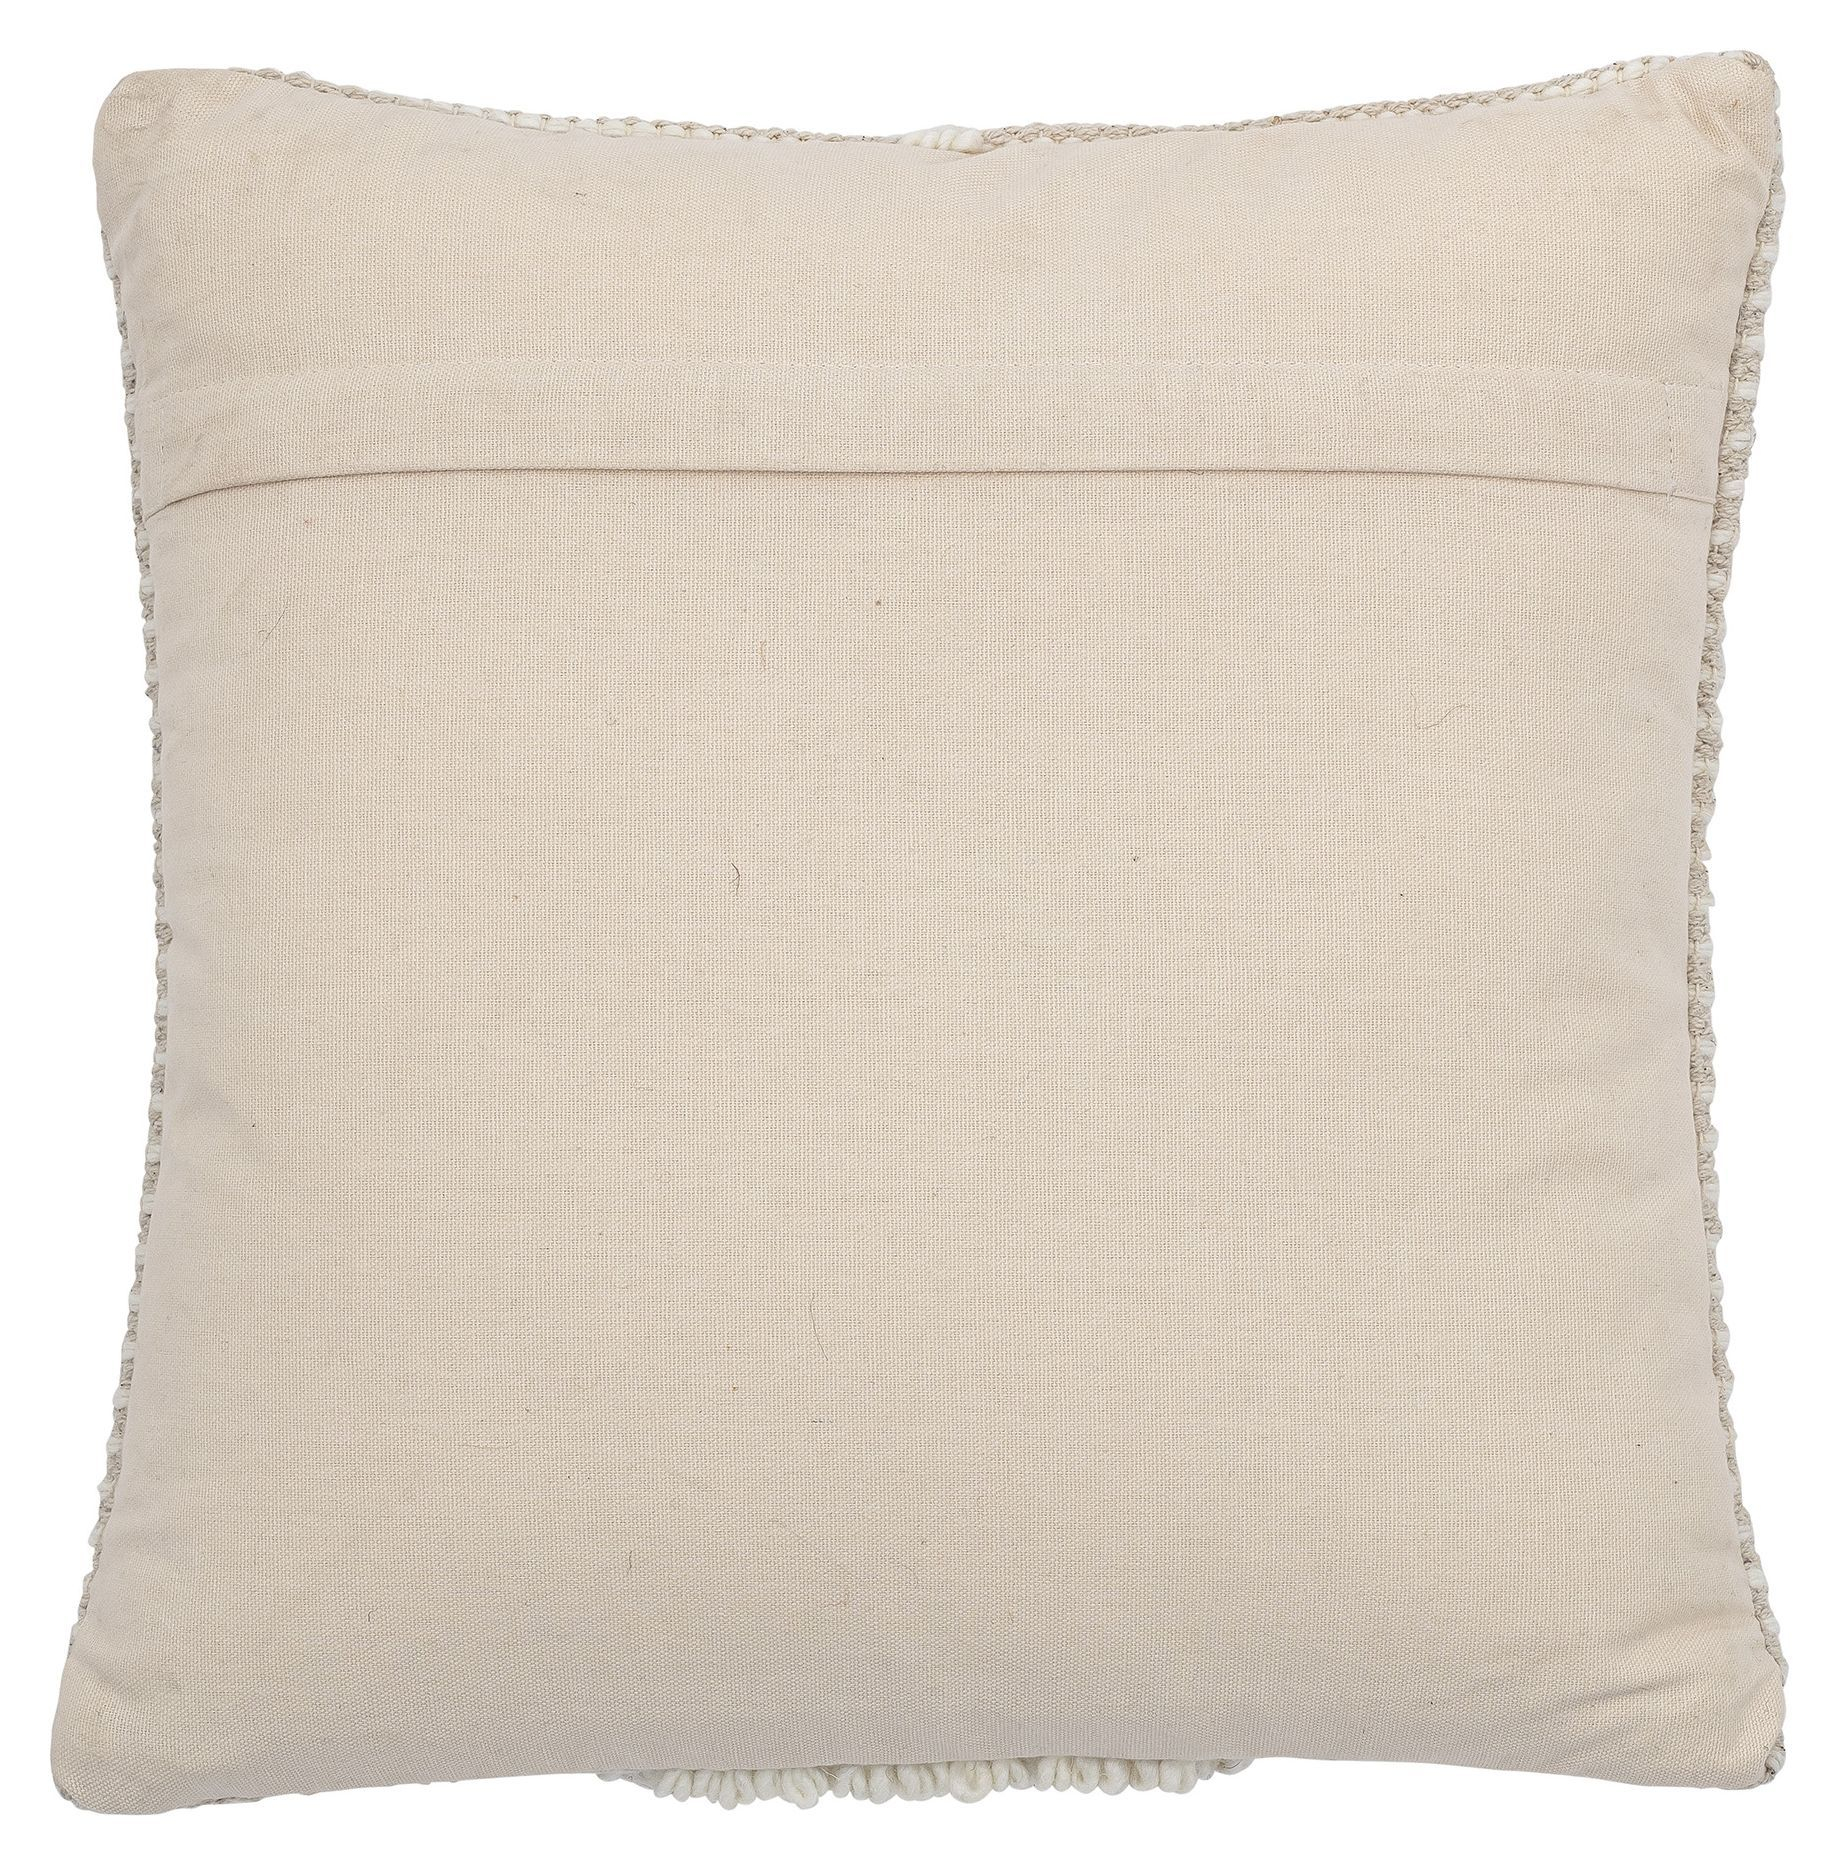 Bloomingville Ivory Pude - Beige, 40x40